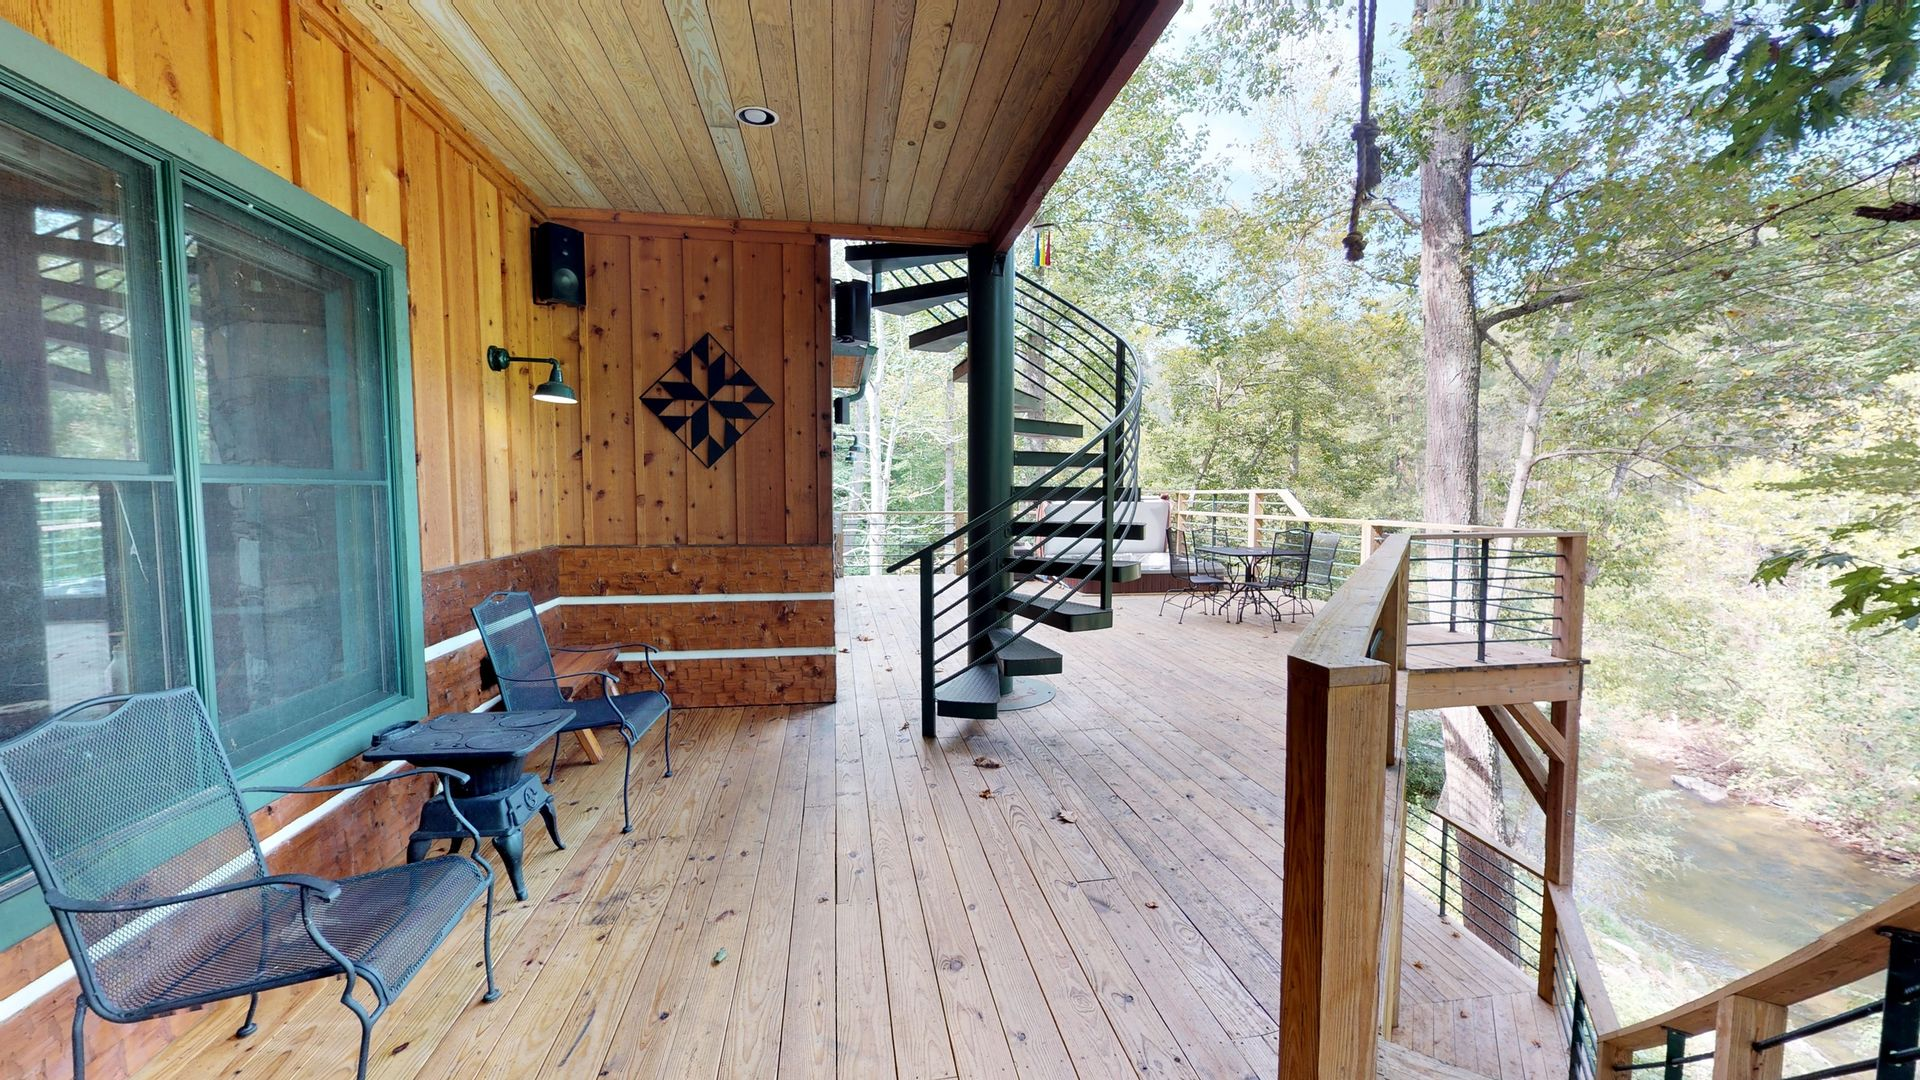 Deck with chairs and access to the river